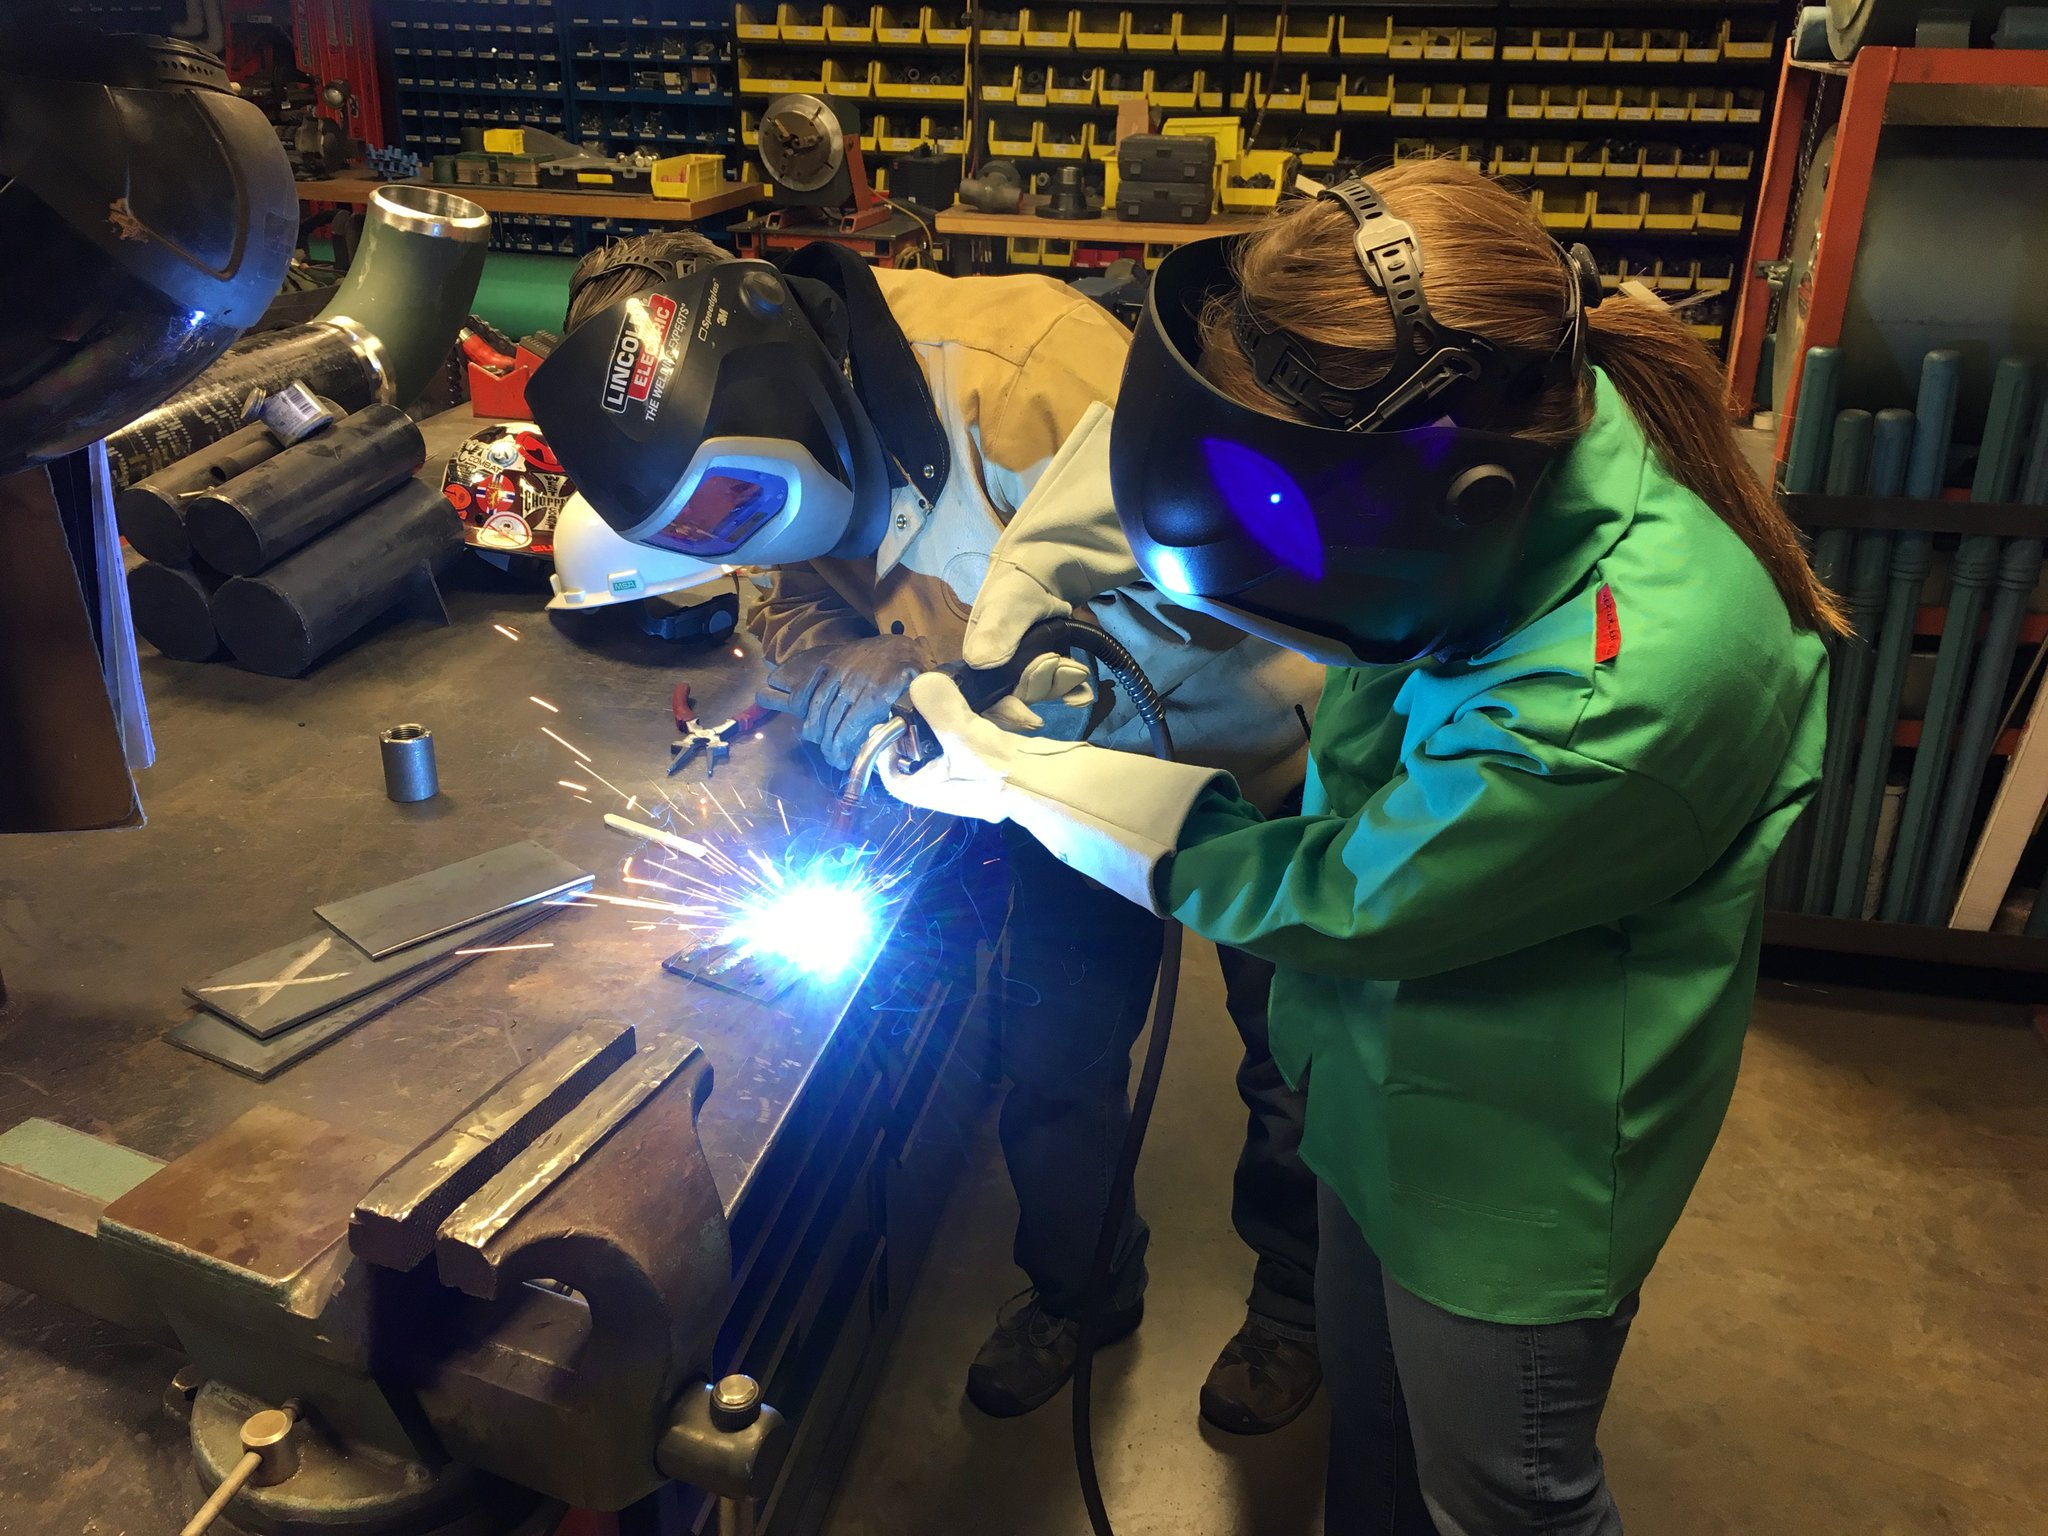 Bonus of outreach collaboration with Abbott Power Plant: learning to weld. https://t.co/6dzdl1Xqnj